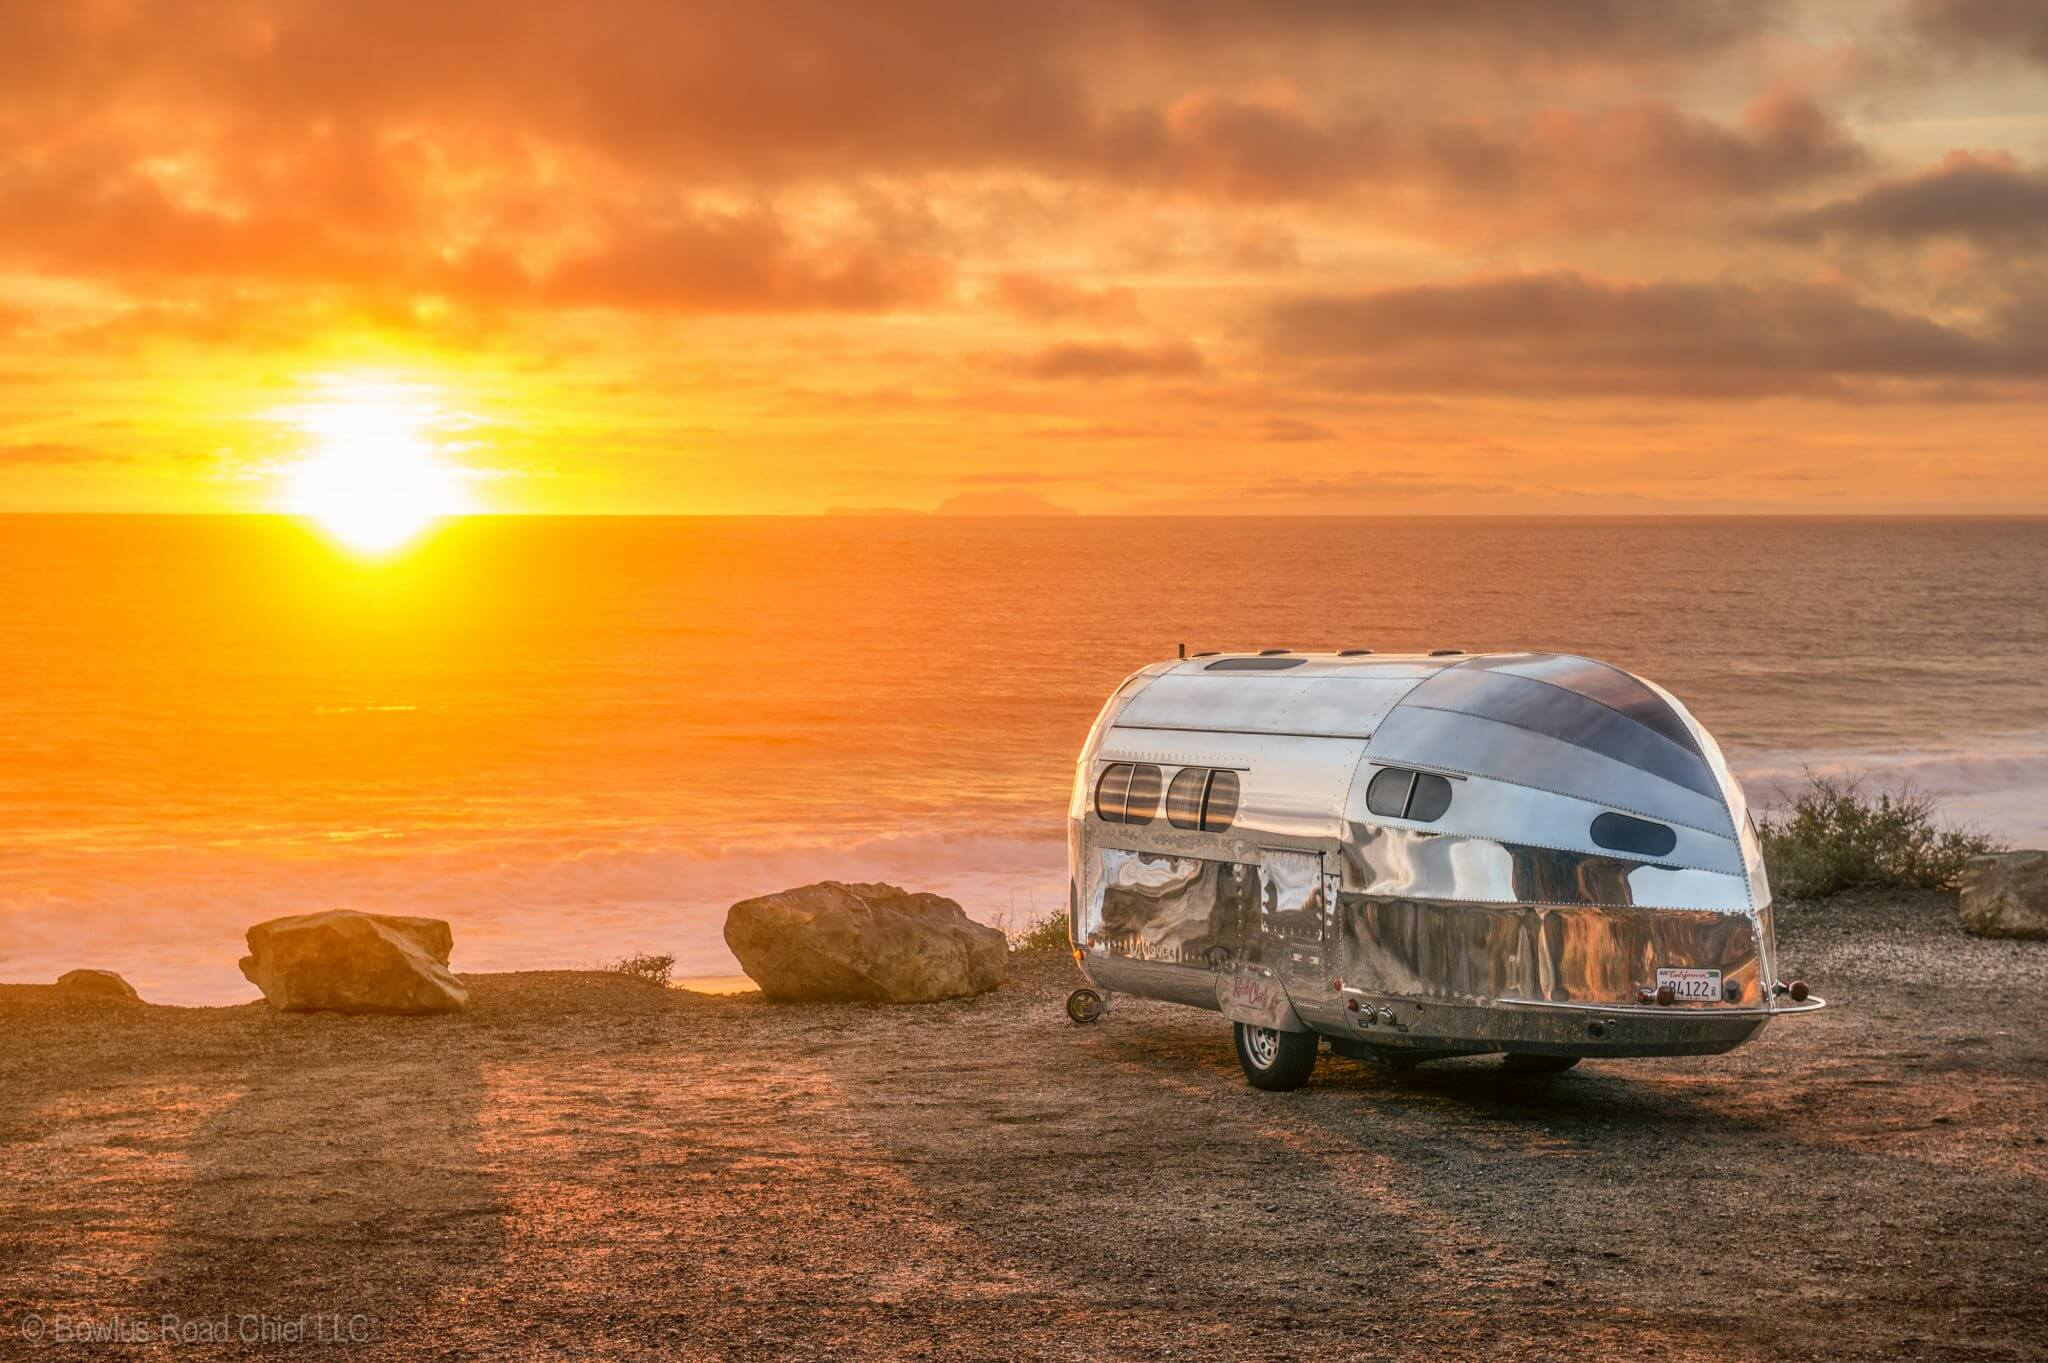 Is the Bowlus Road Chief – Endless Highways Right For You?